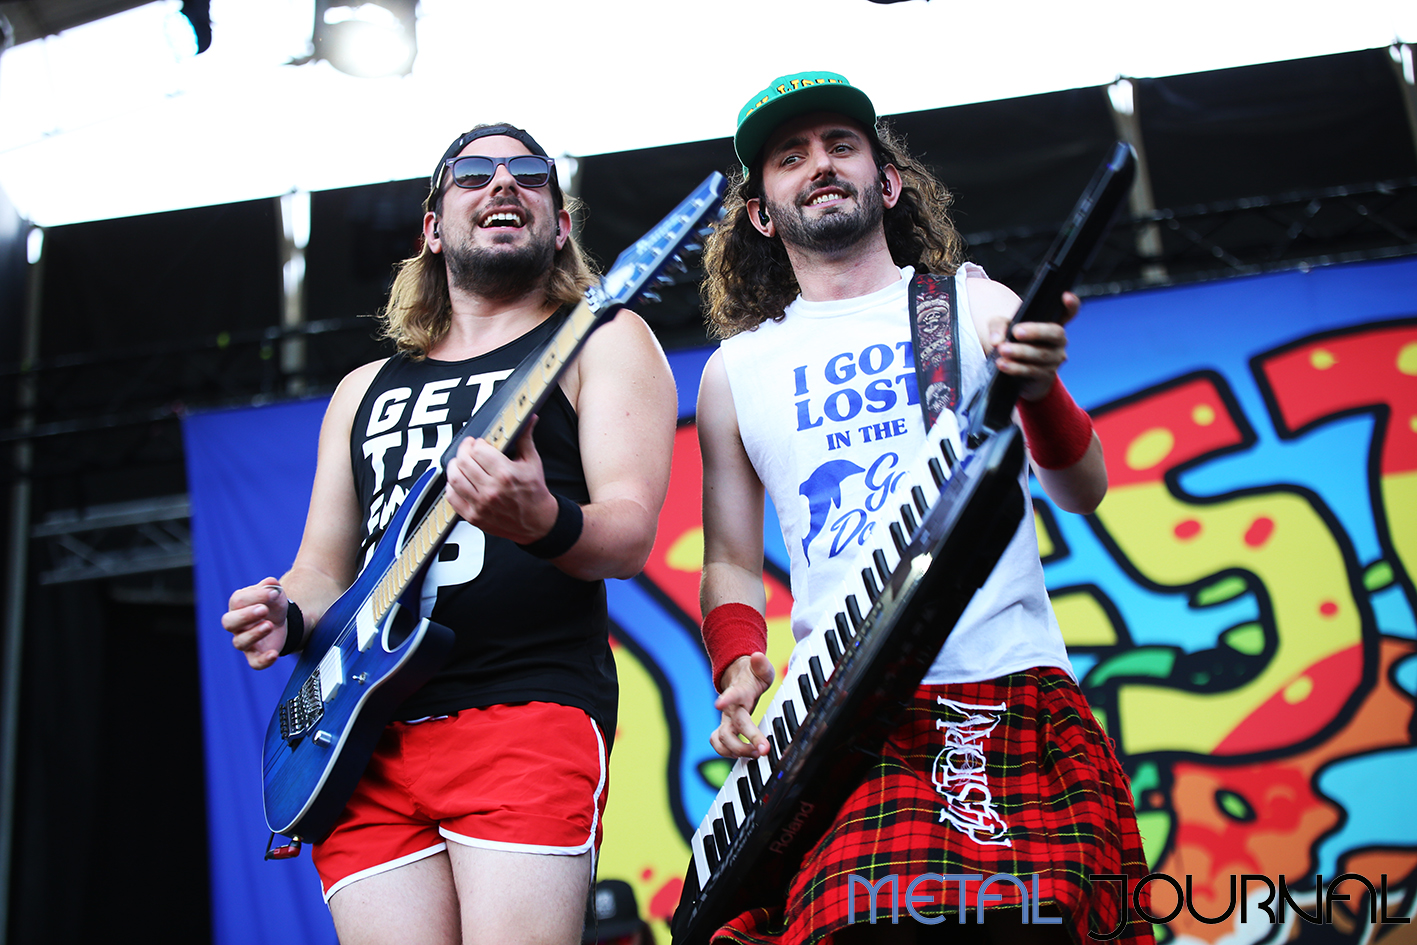 alestorm - leyendas del rock 2019 metal journal pic 5